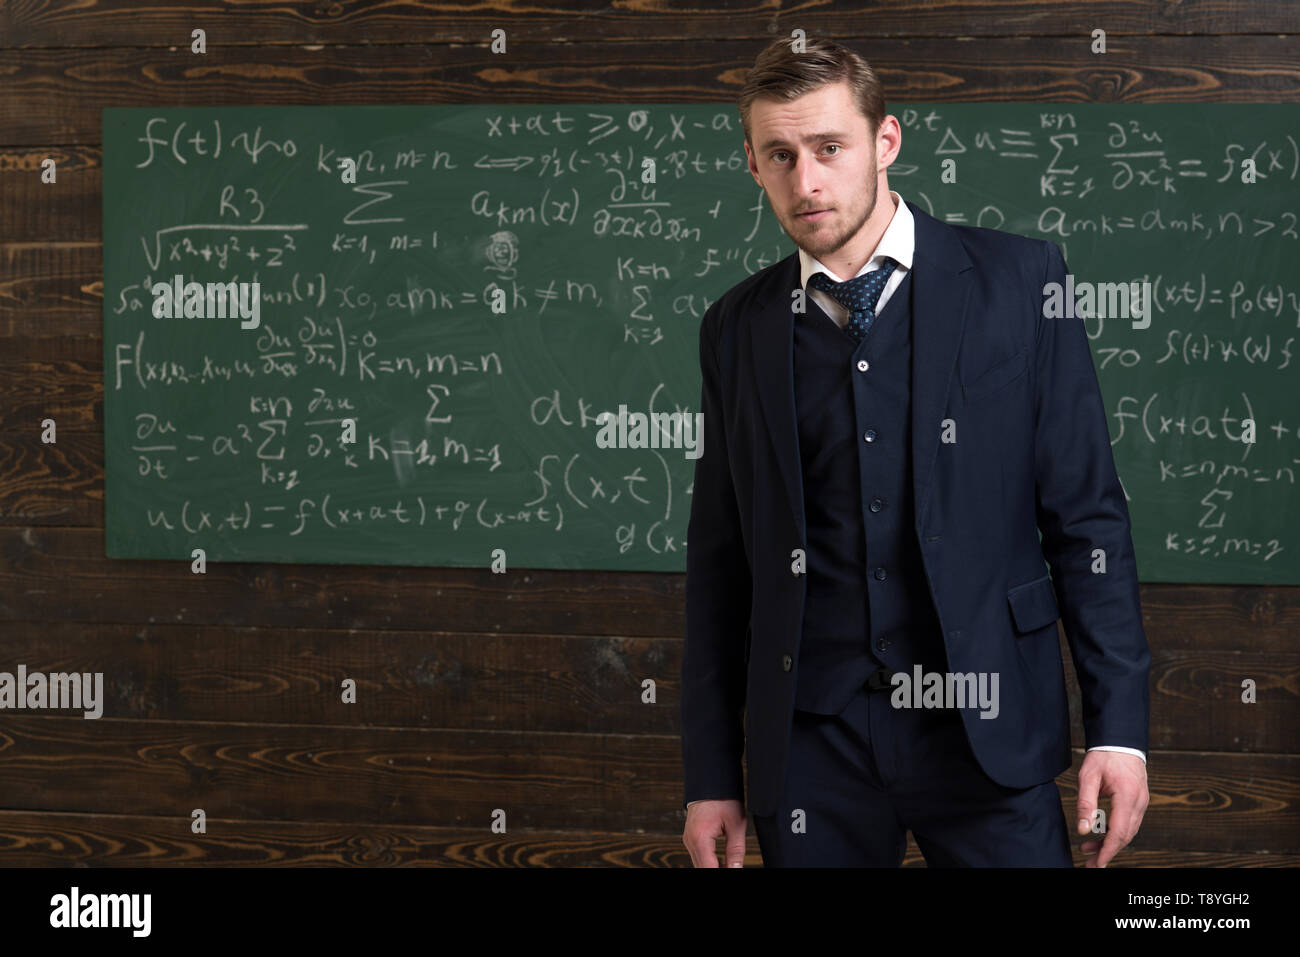 Talented mathematician. Man formal wear classic suit looks smart, chalkboard with equations background. Genius solved mathematics problem. Teacher - Stock Image